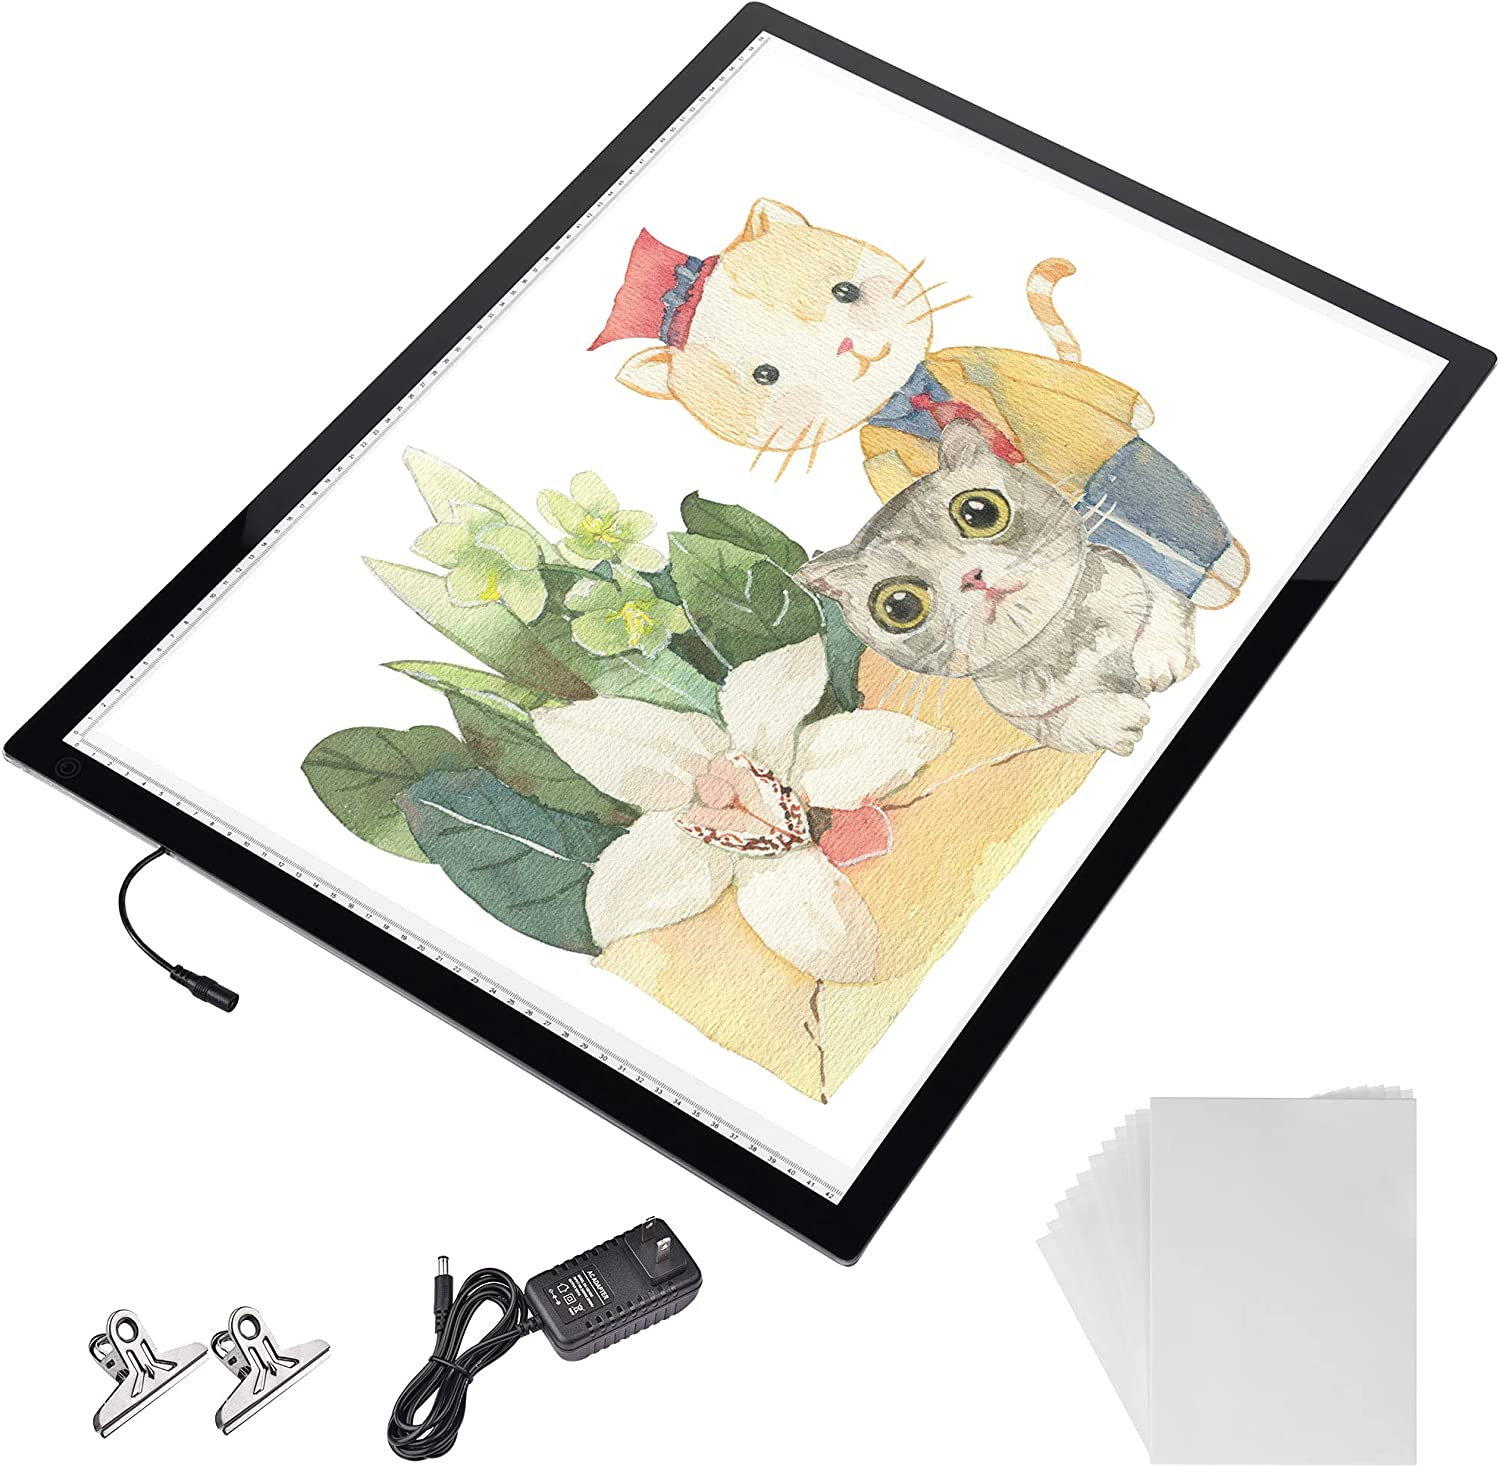 A3 LED Light Box for Clearance SALE Limited Soldering time Tracing Adjustabl Thin Pad Ultra with